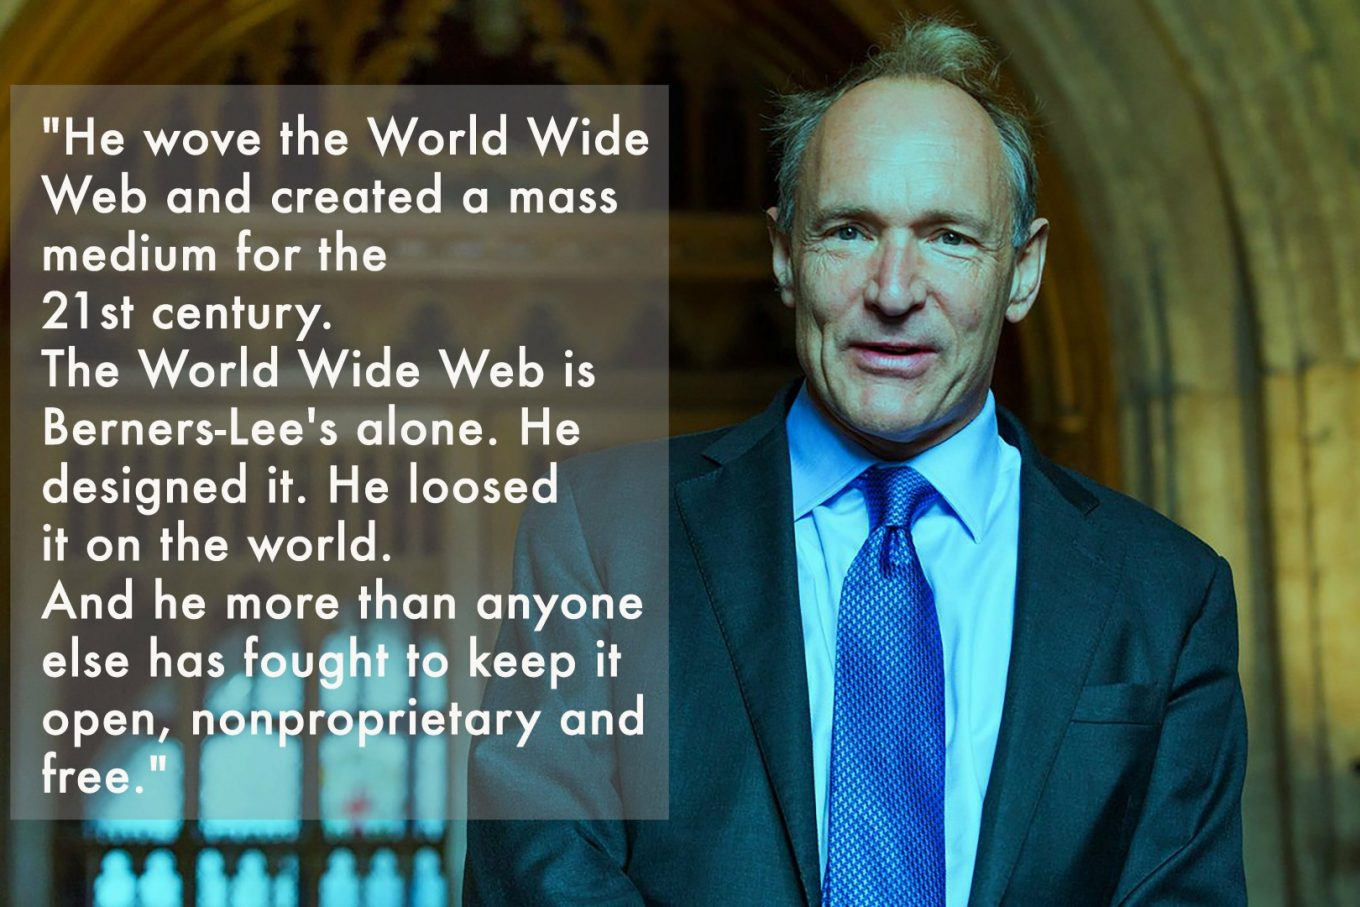 Tim Berners-Lee's entry in Time magazine's list of the 100 Most Important People of the 20th century, March 1999